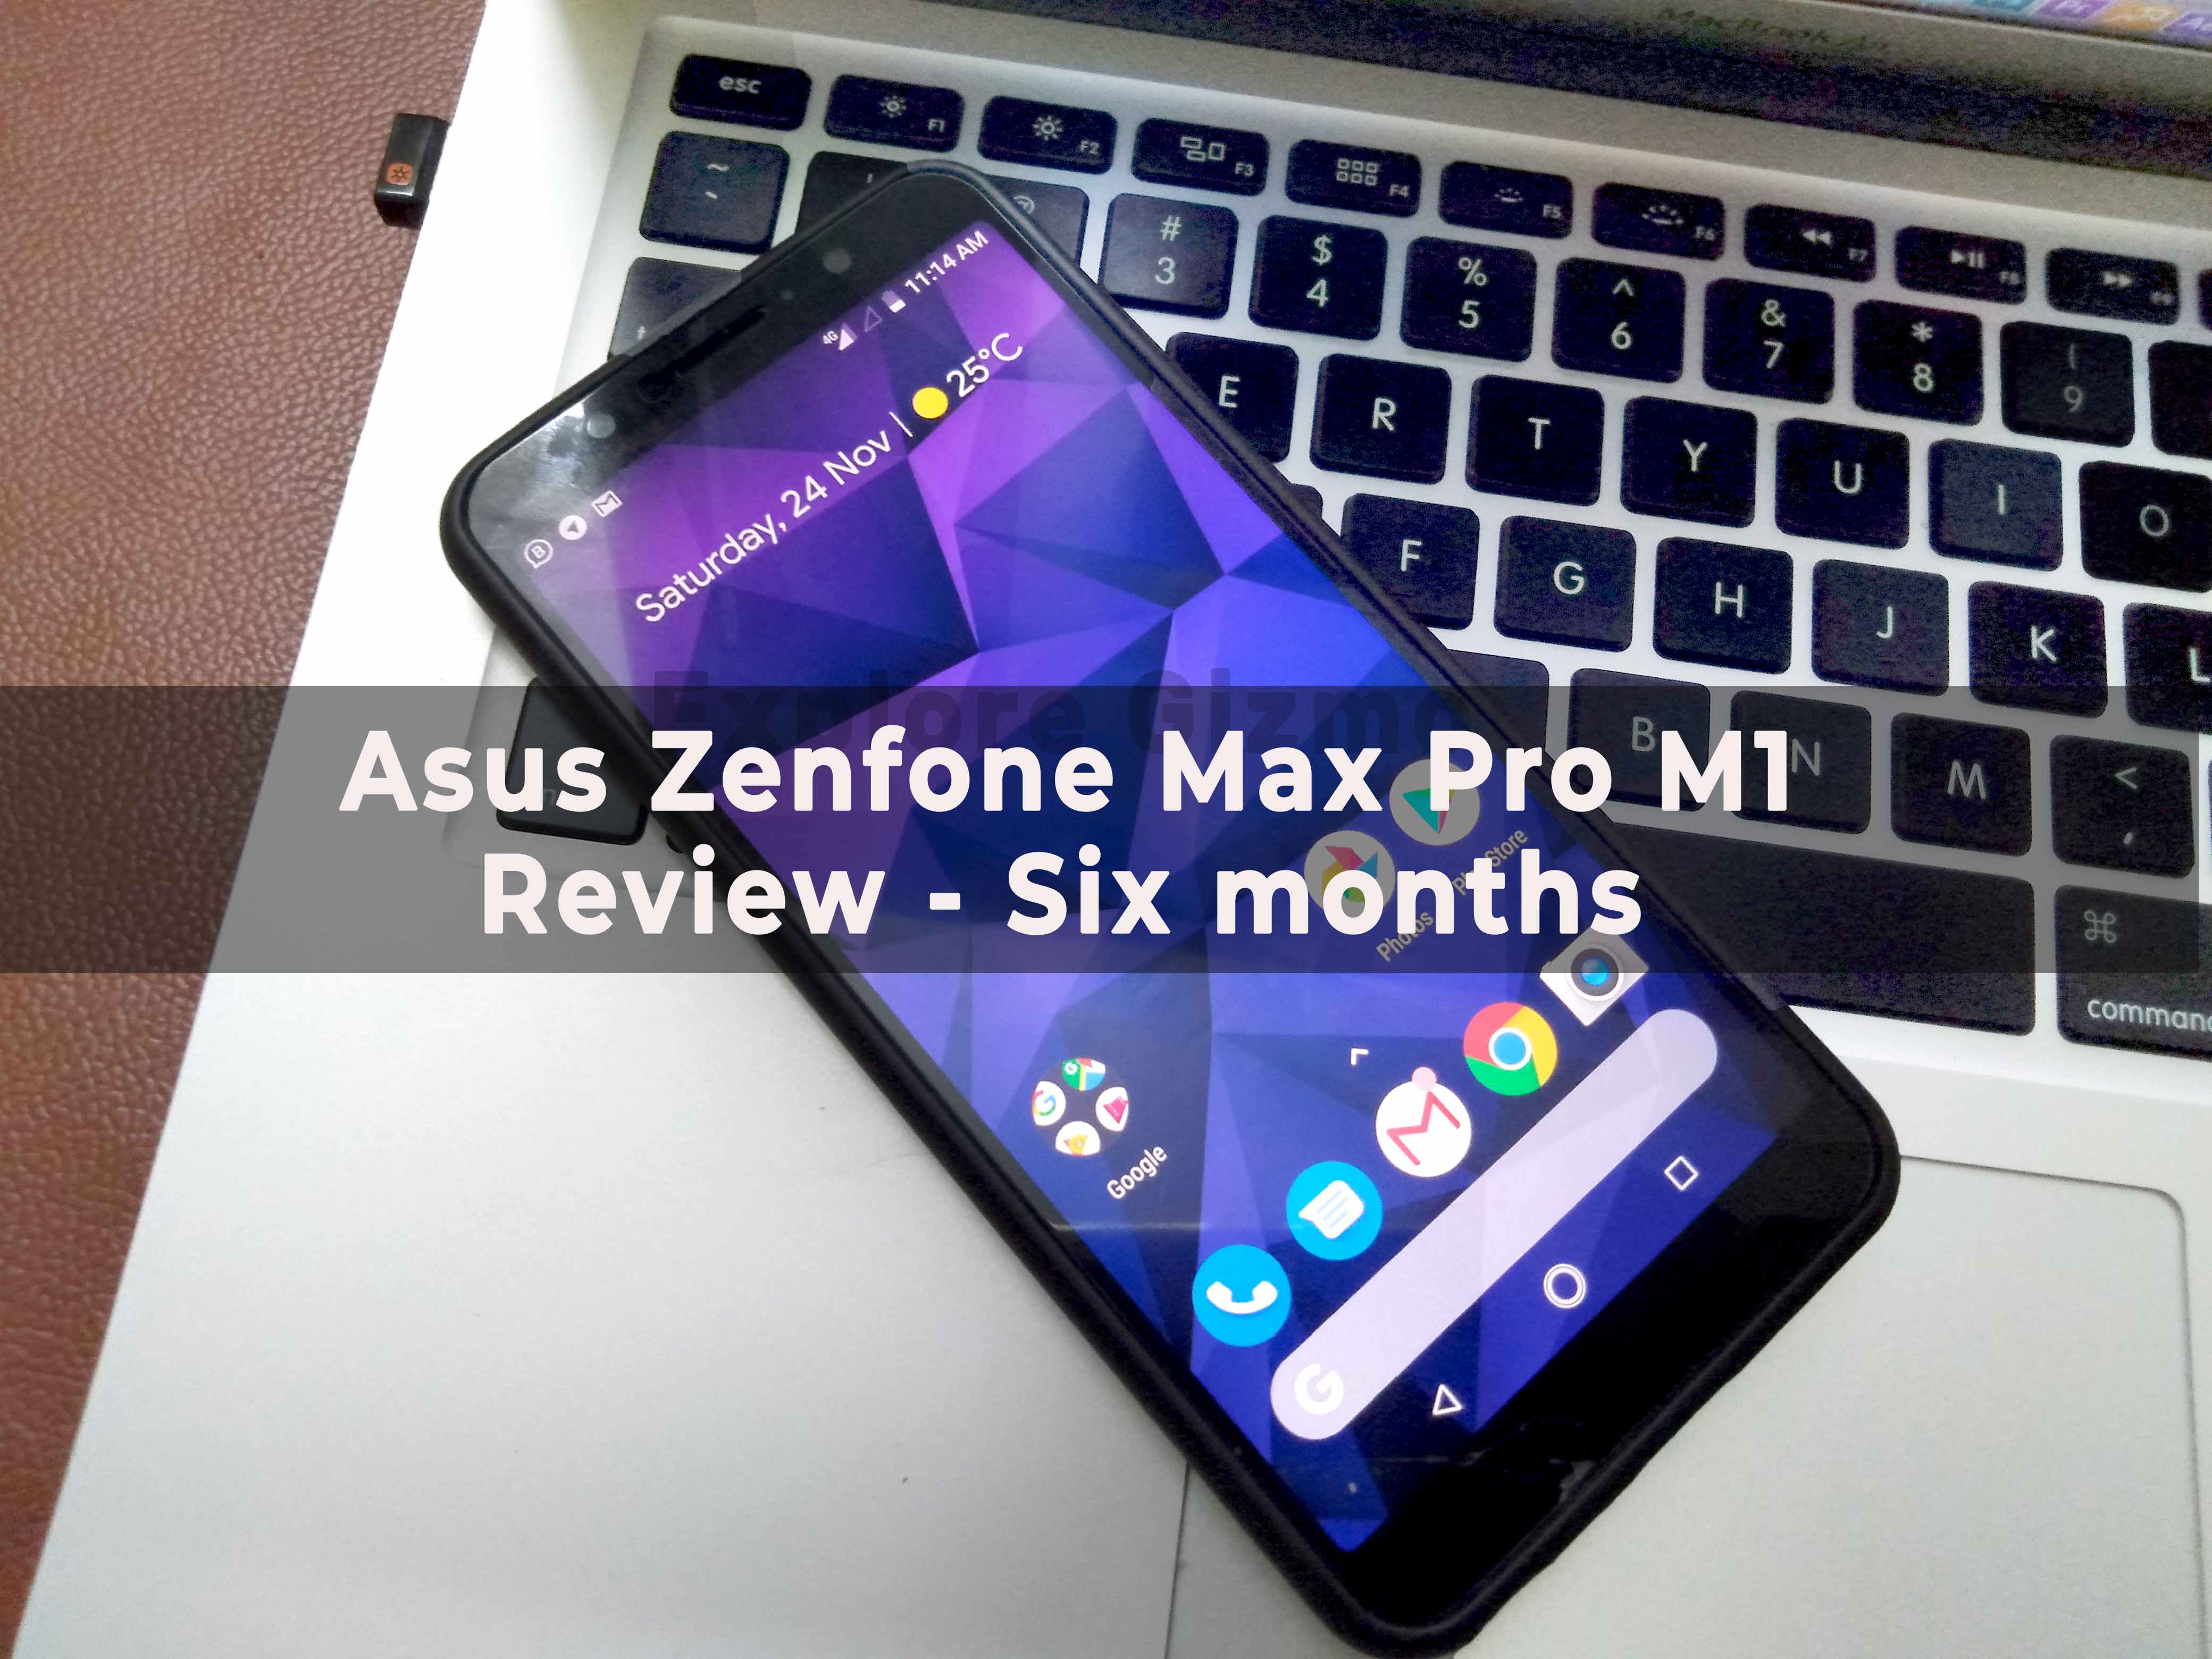 Asus Zenfone Max Pro M1 Review: Six Months of Experience